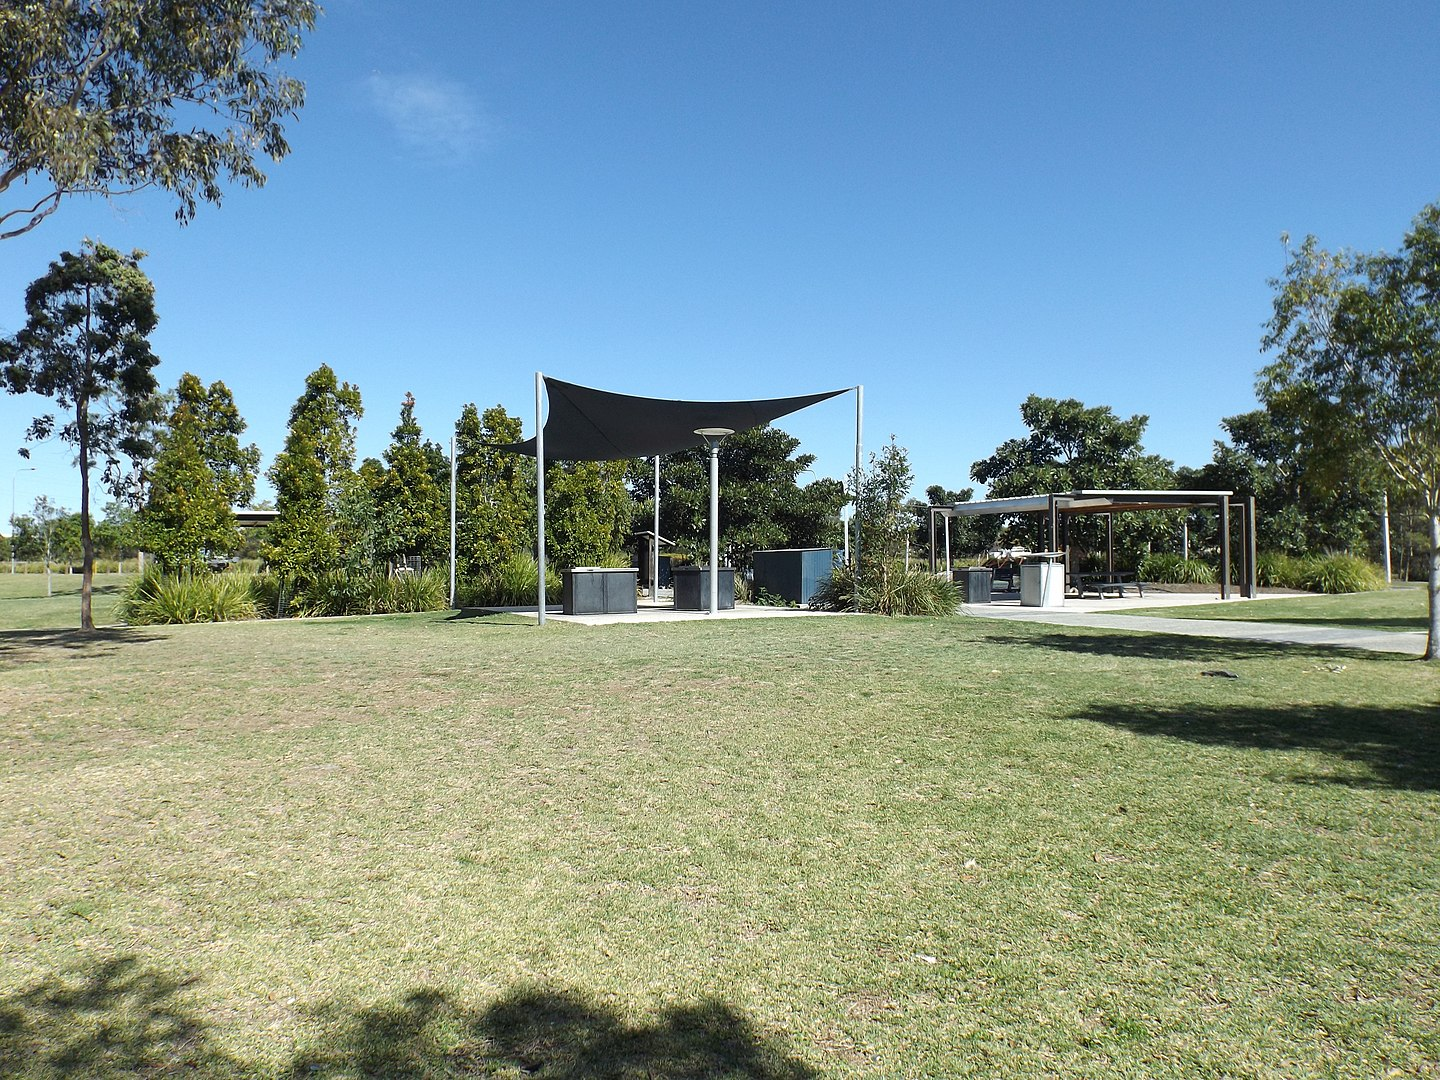 1440px-Berrinba_Wetlands_picnic_area